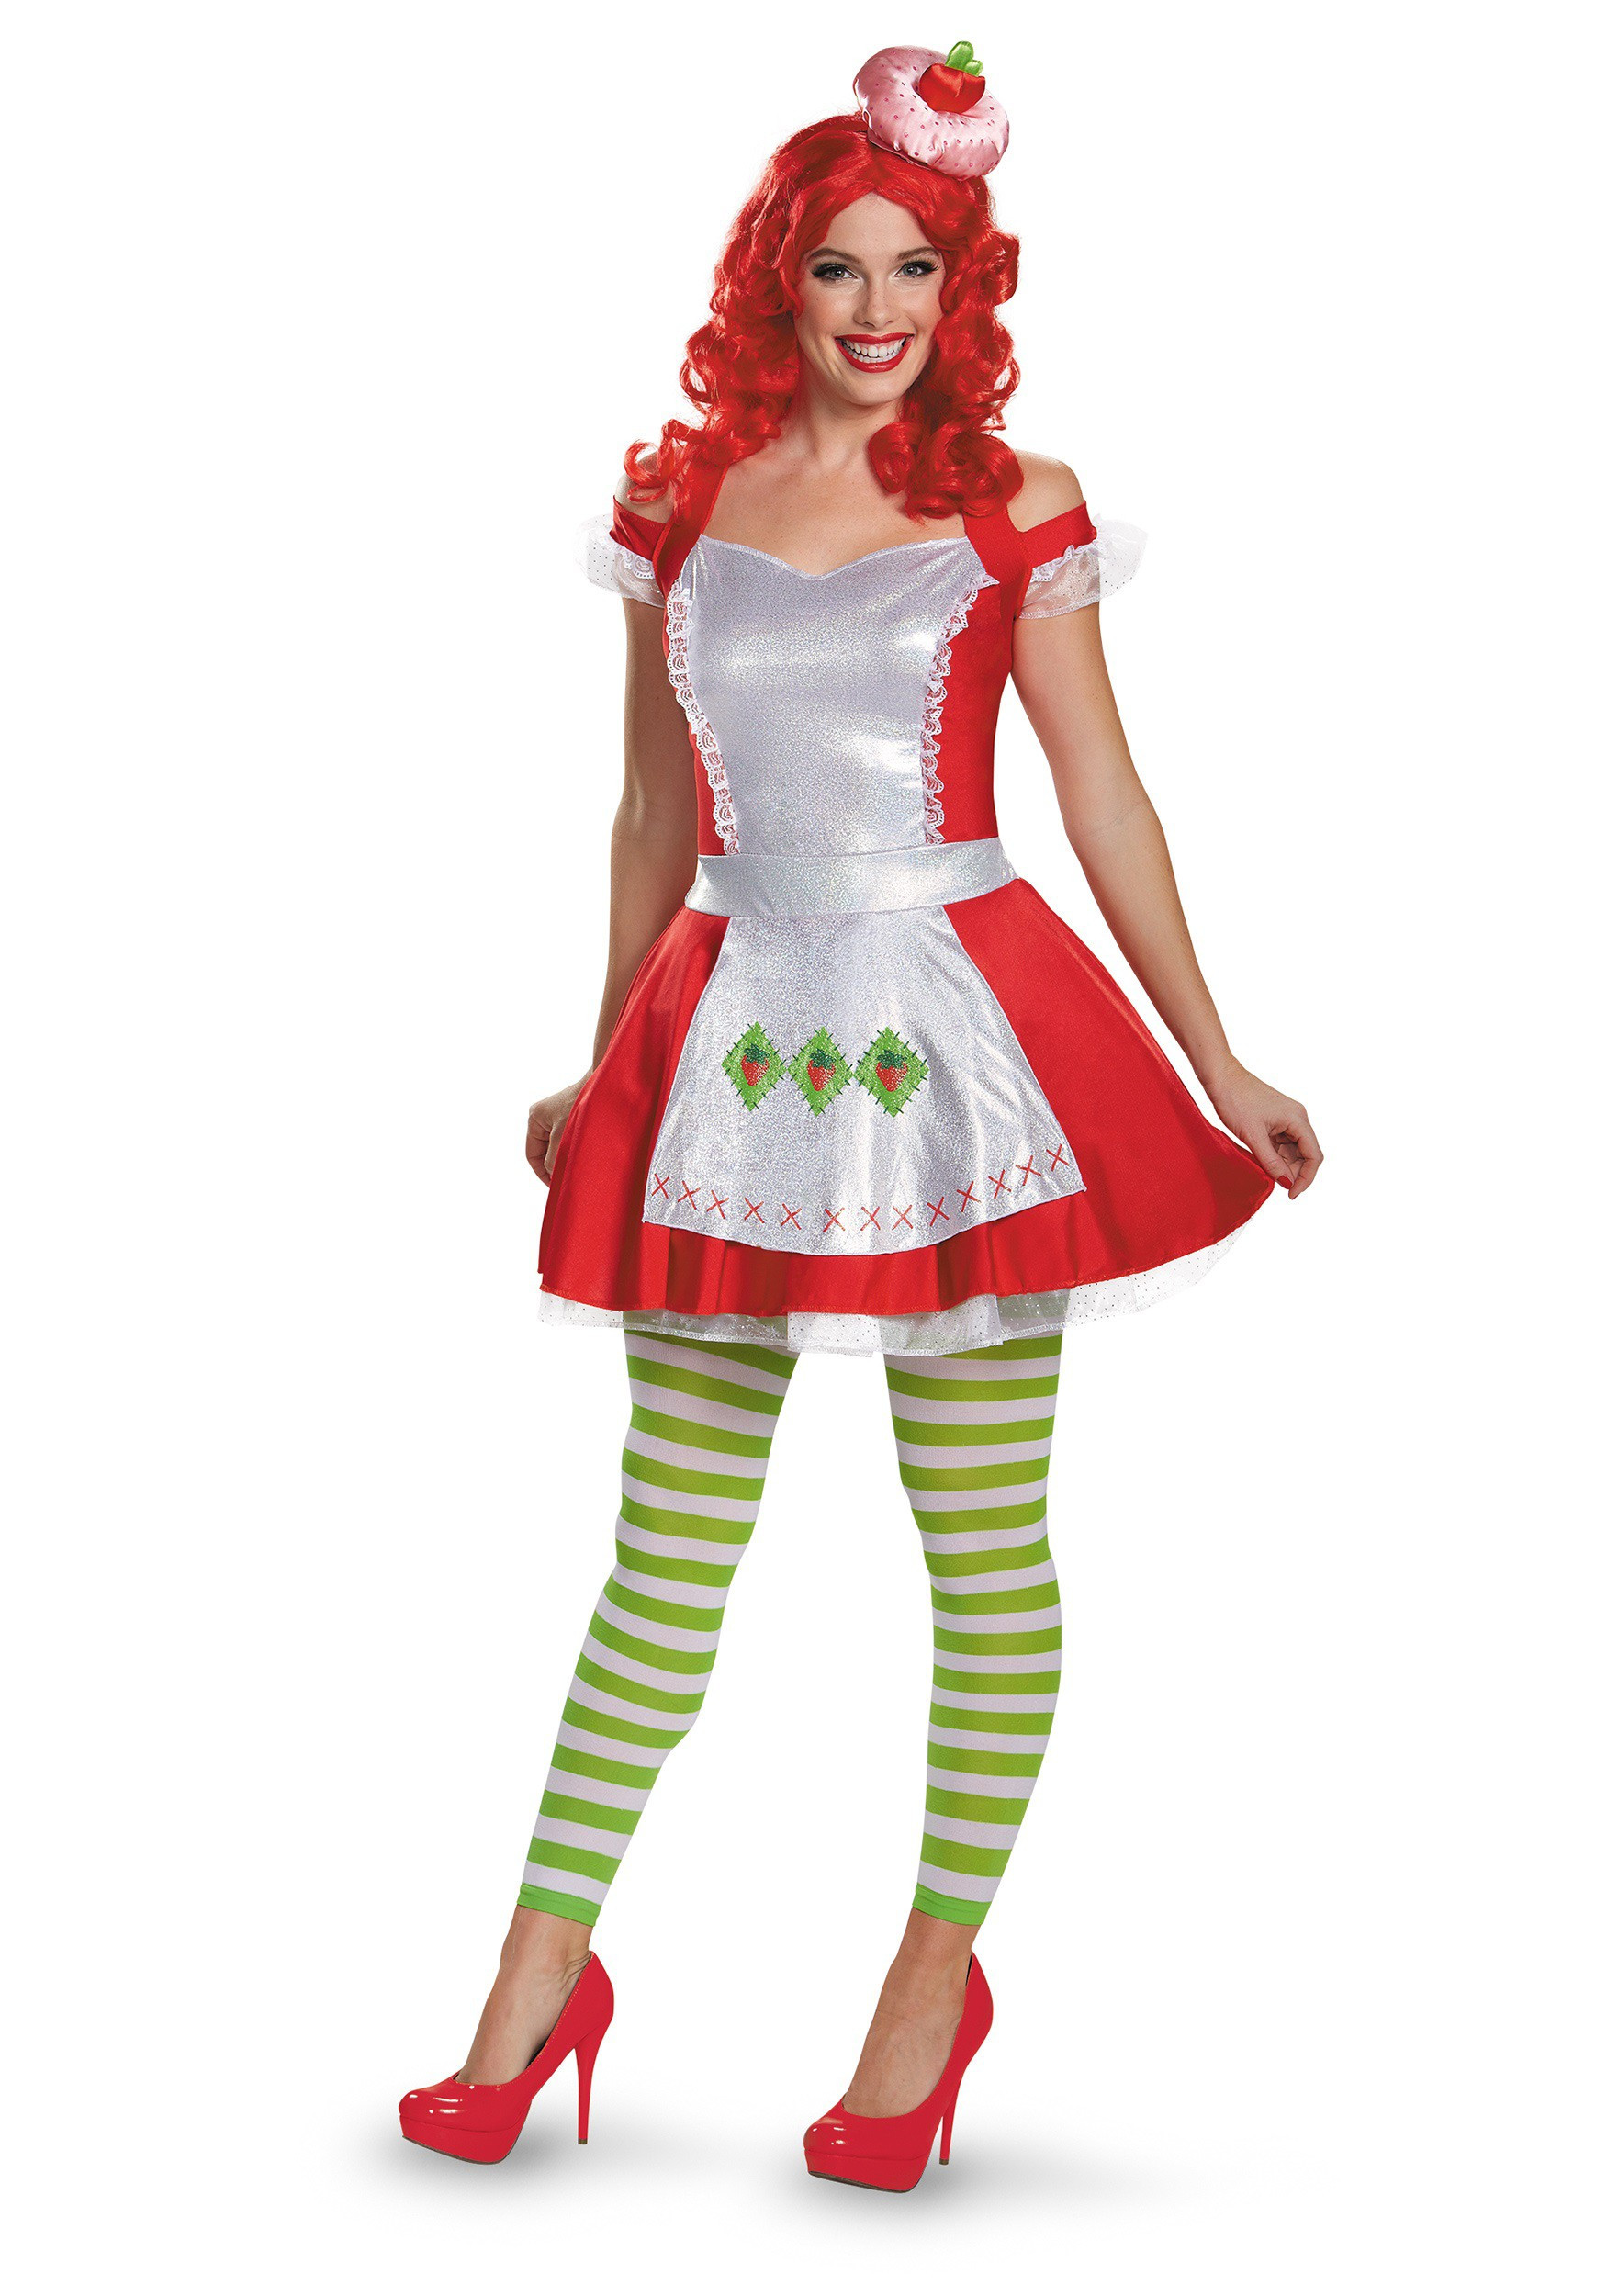 Strawberry Shortcake Halloween Costume  Strawberry Shortcake Deluxe Adult Costume